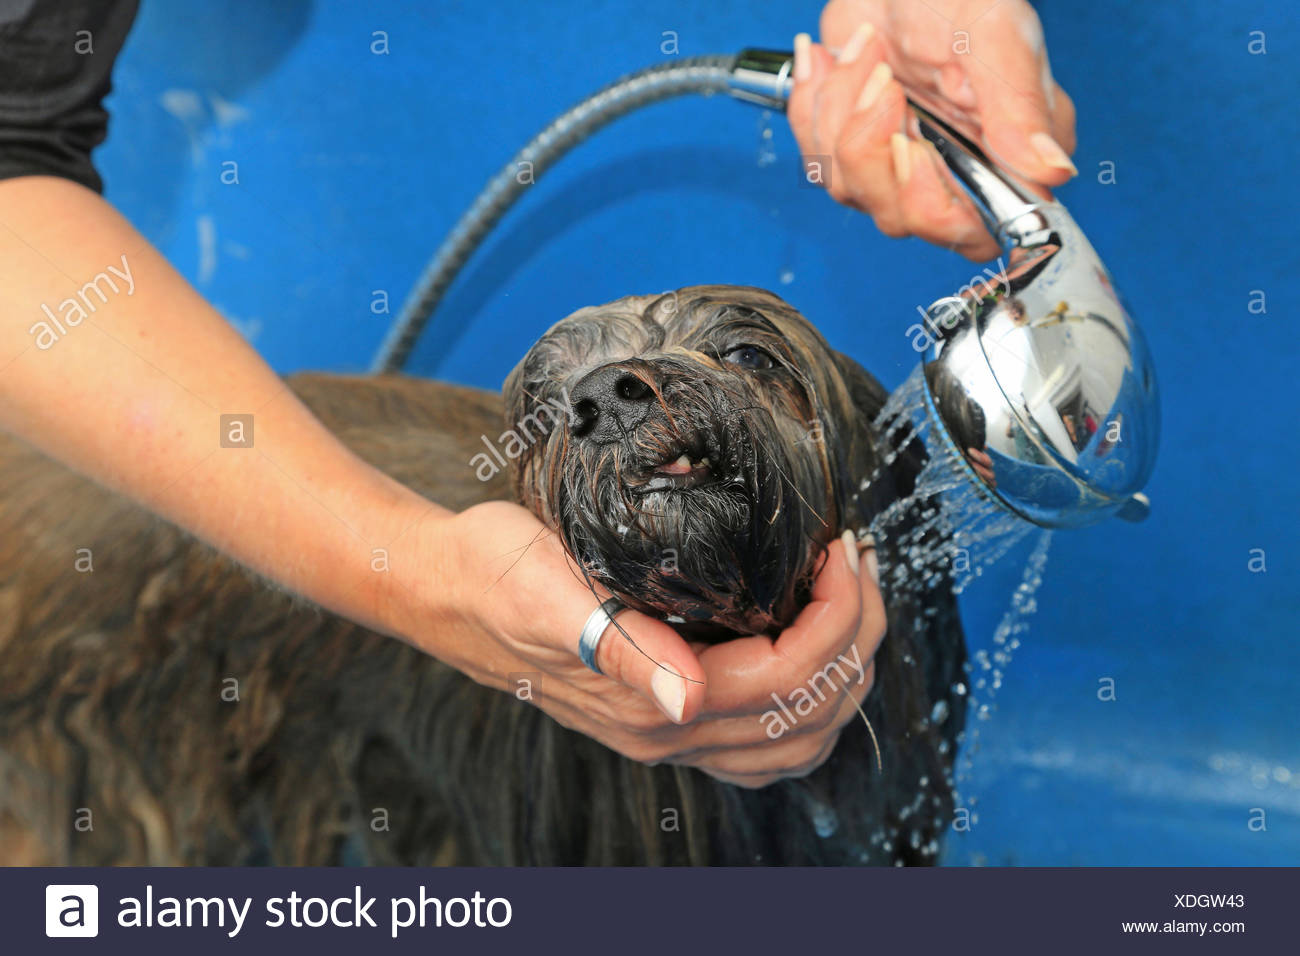 Lhasa Apso At Dog Groomer Spraying With Hand Held Shower Head